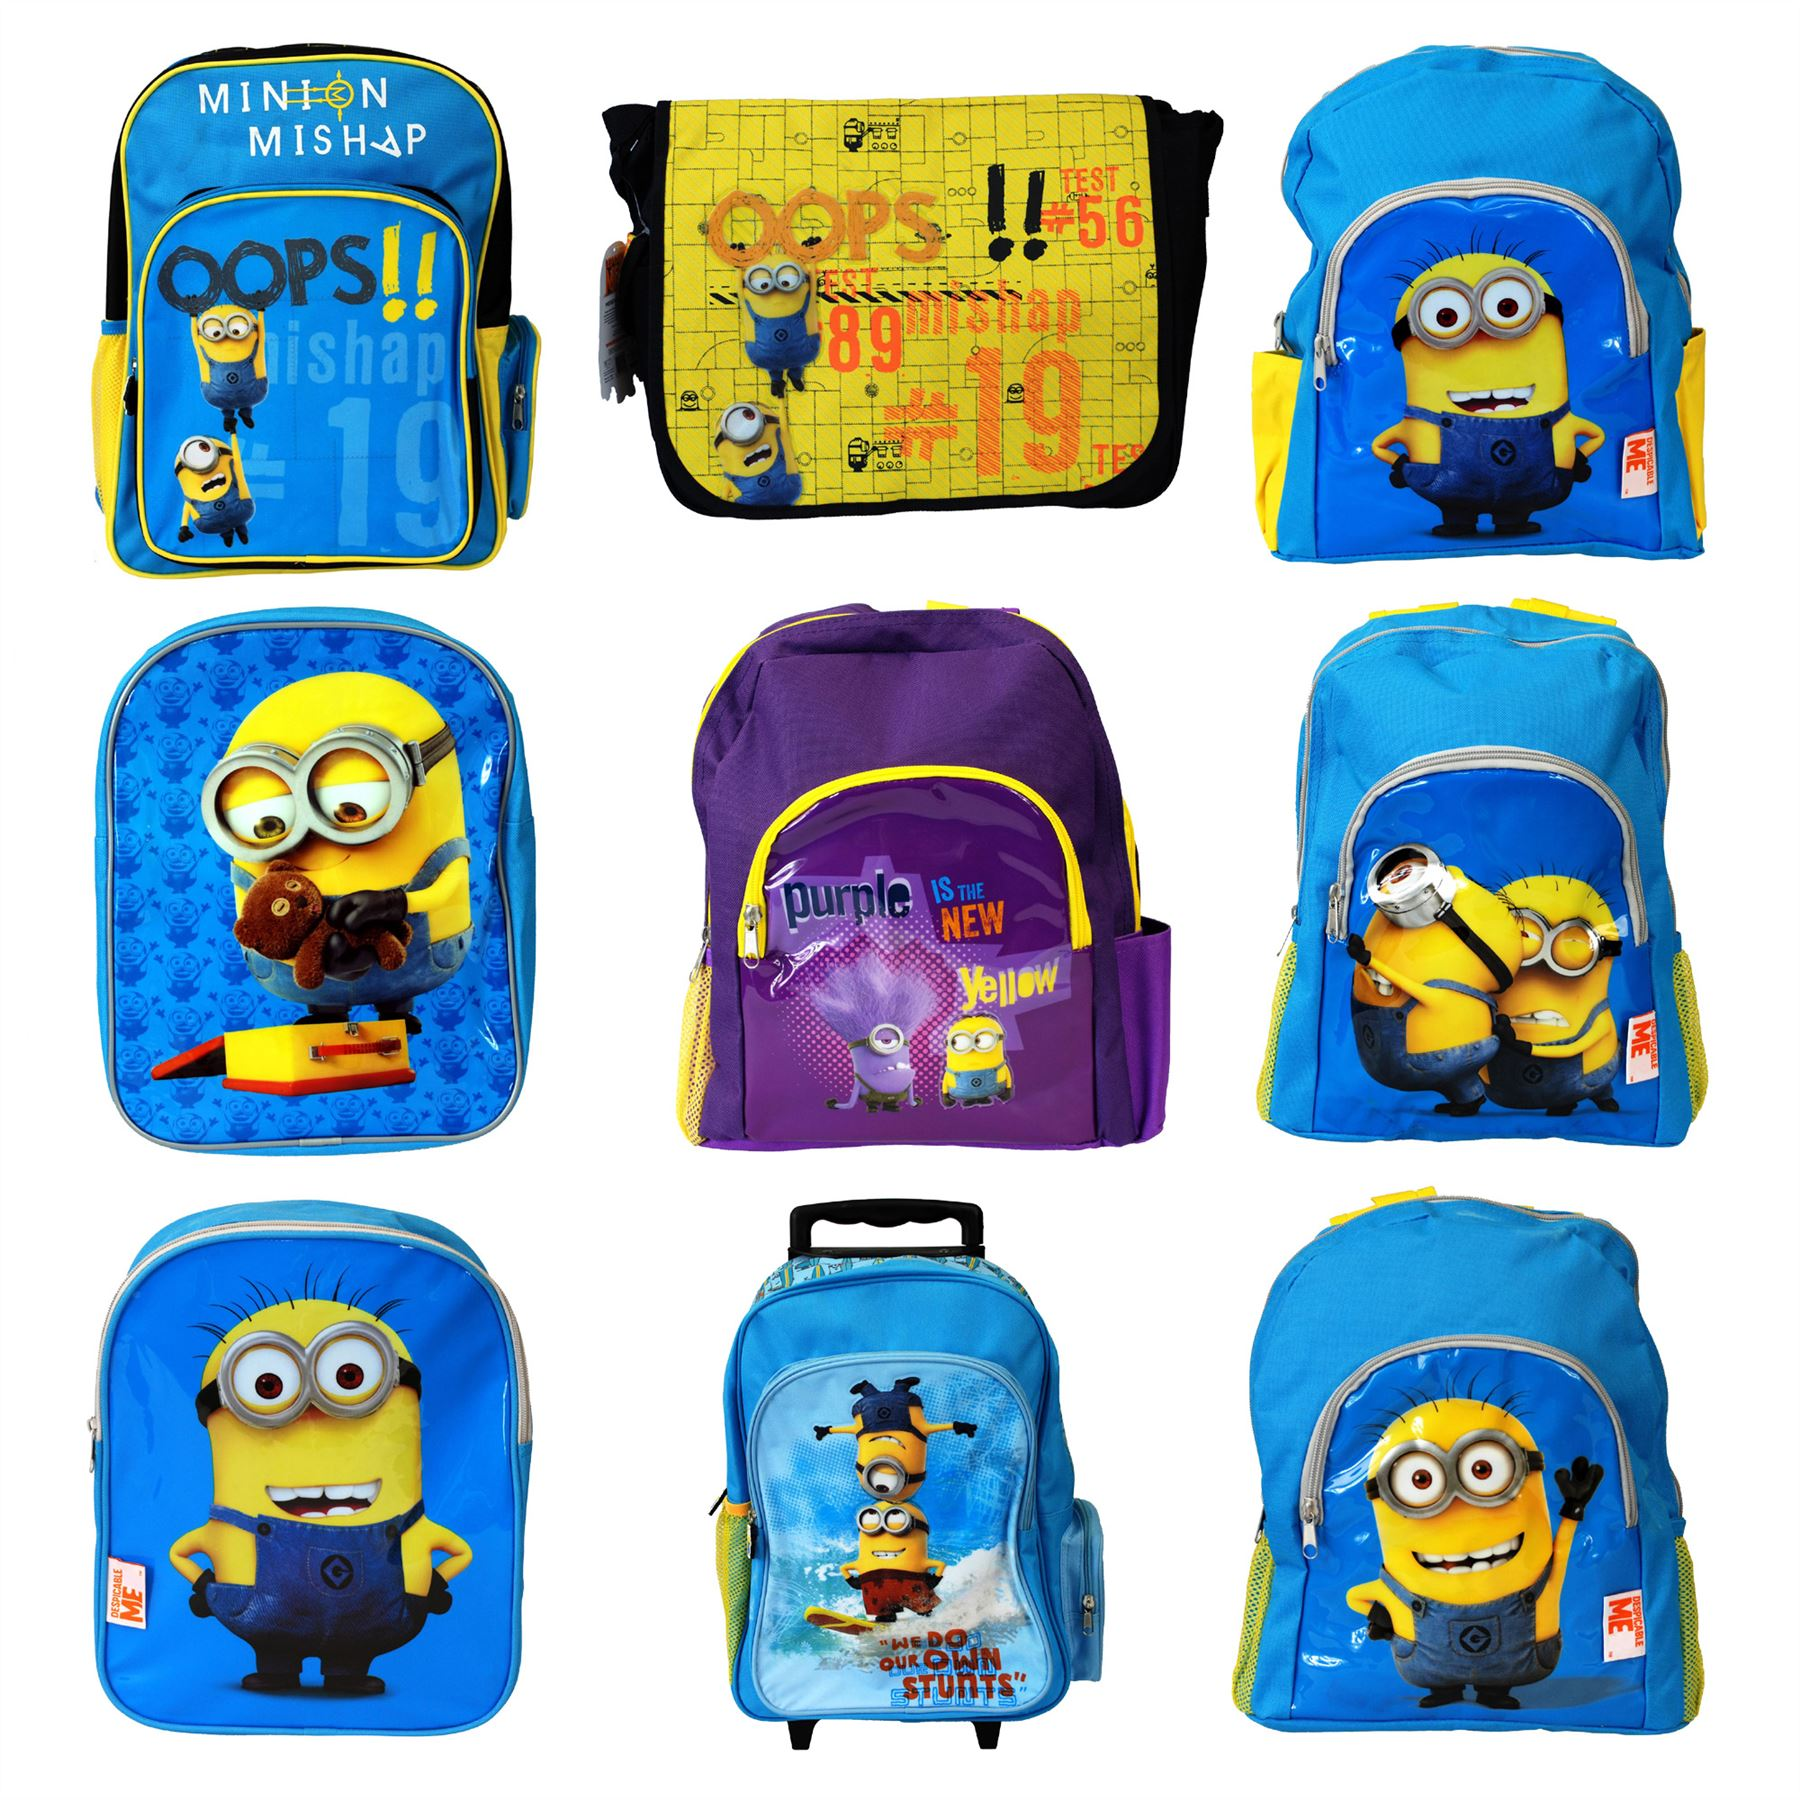 290bff6fce Details about Universal® Despicable Me Minions Childrens Bags Backpack  Messenger School Bags